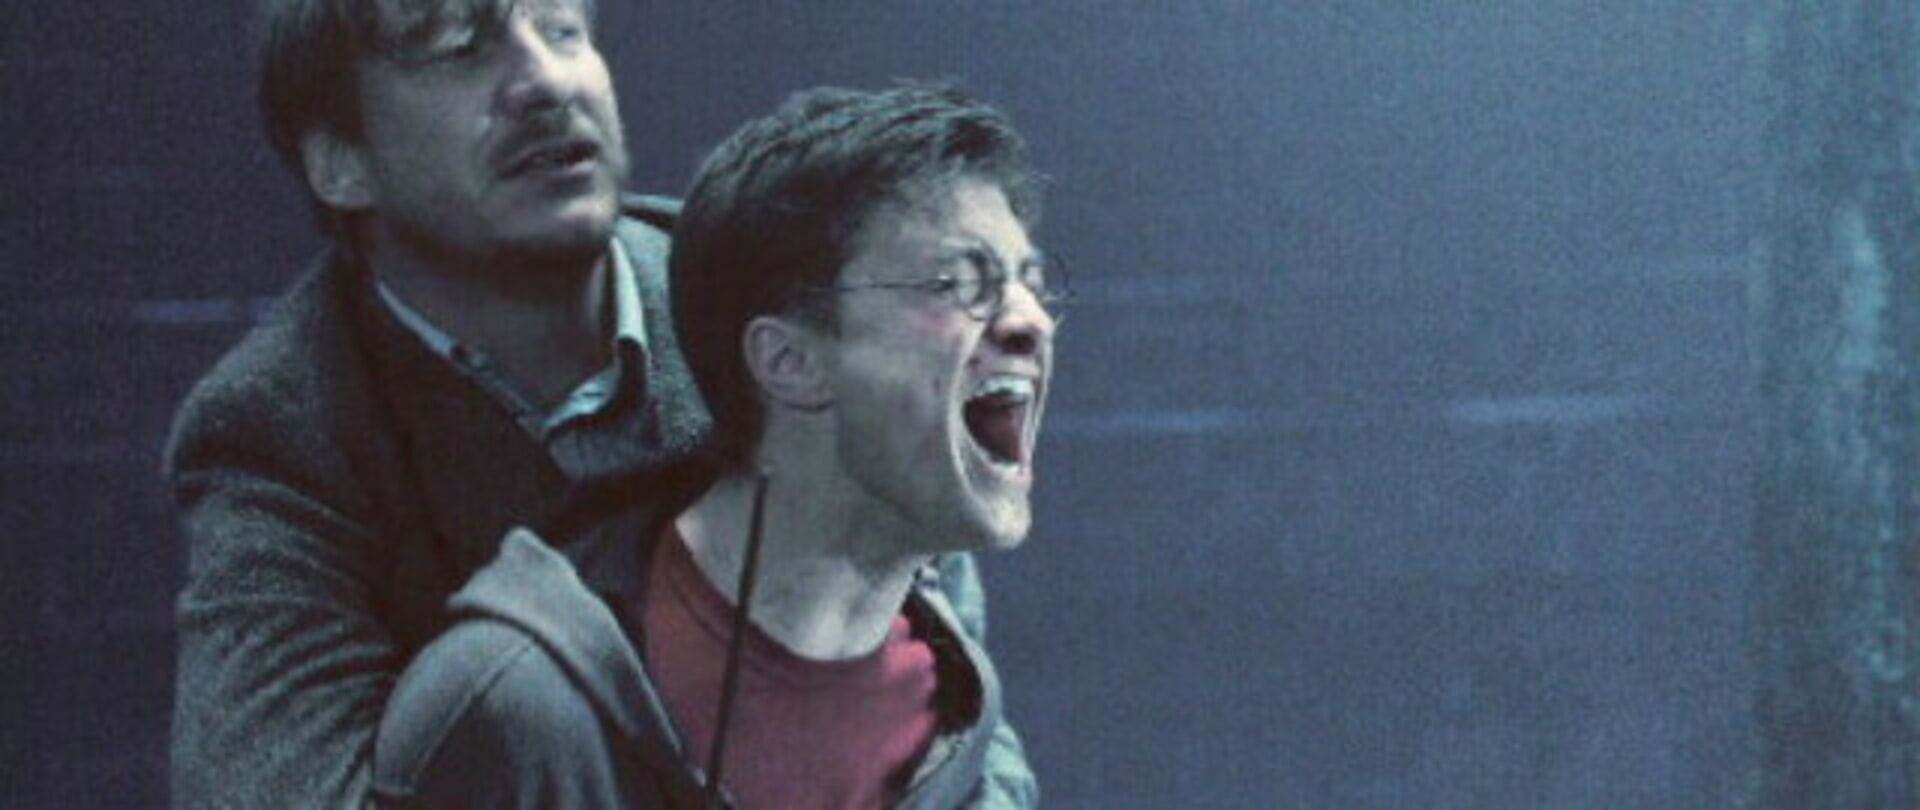 Harry Potter and the Order of the Phoenix - Image 25